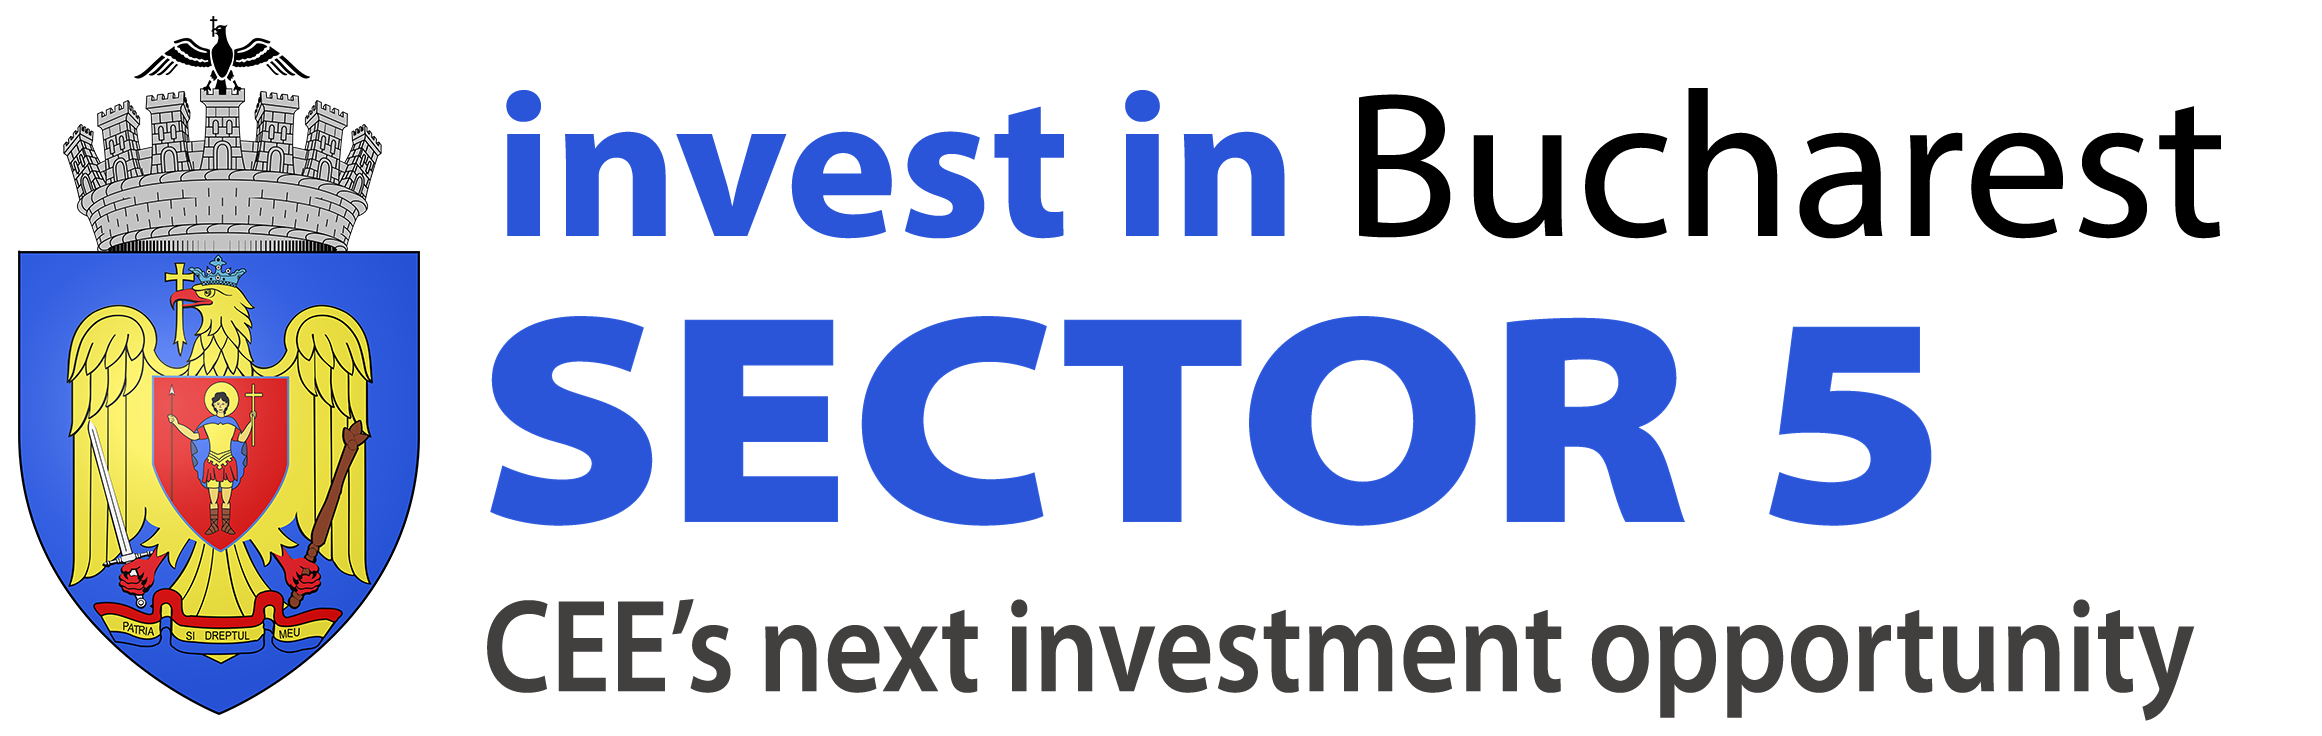 5invest - CEE's most promising investment opportunity